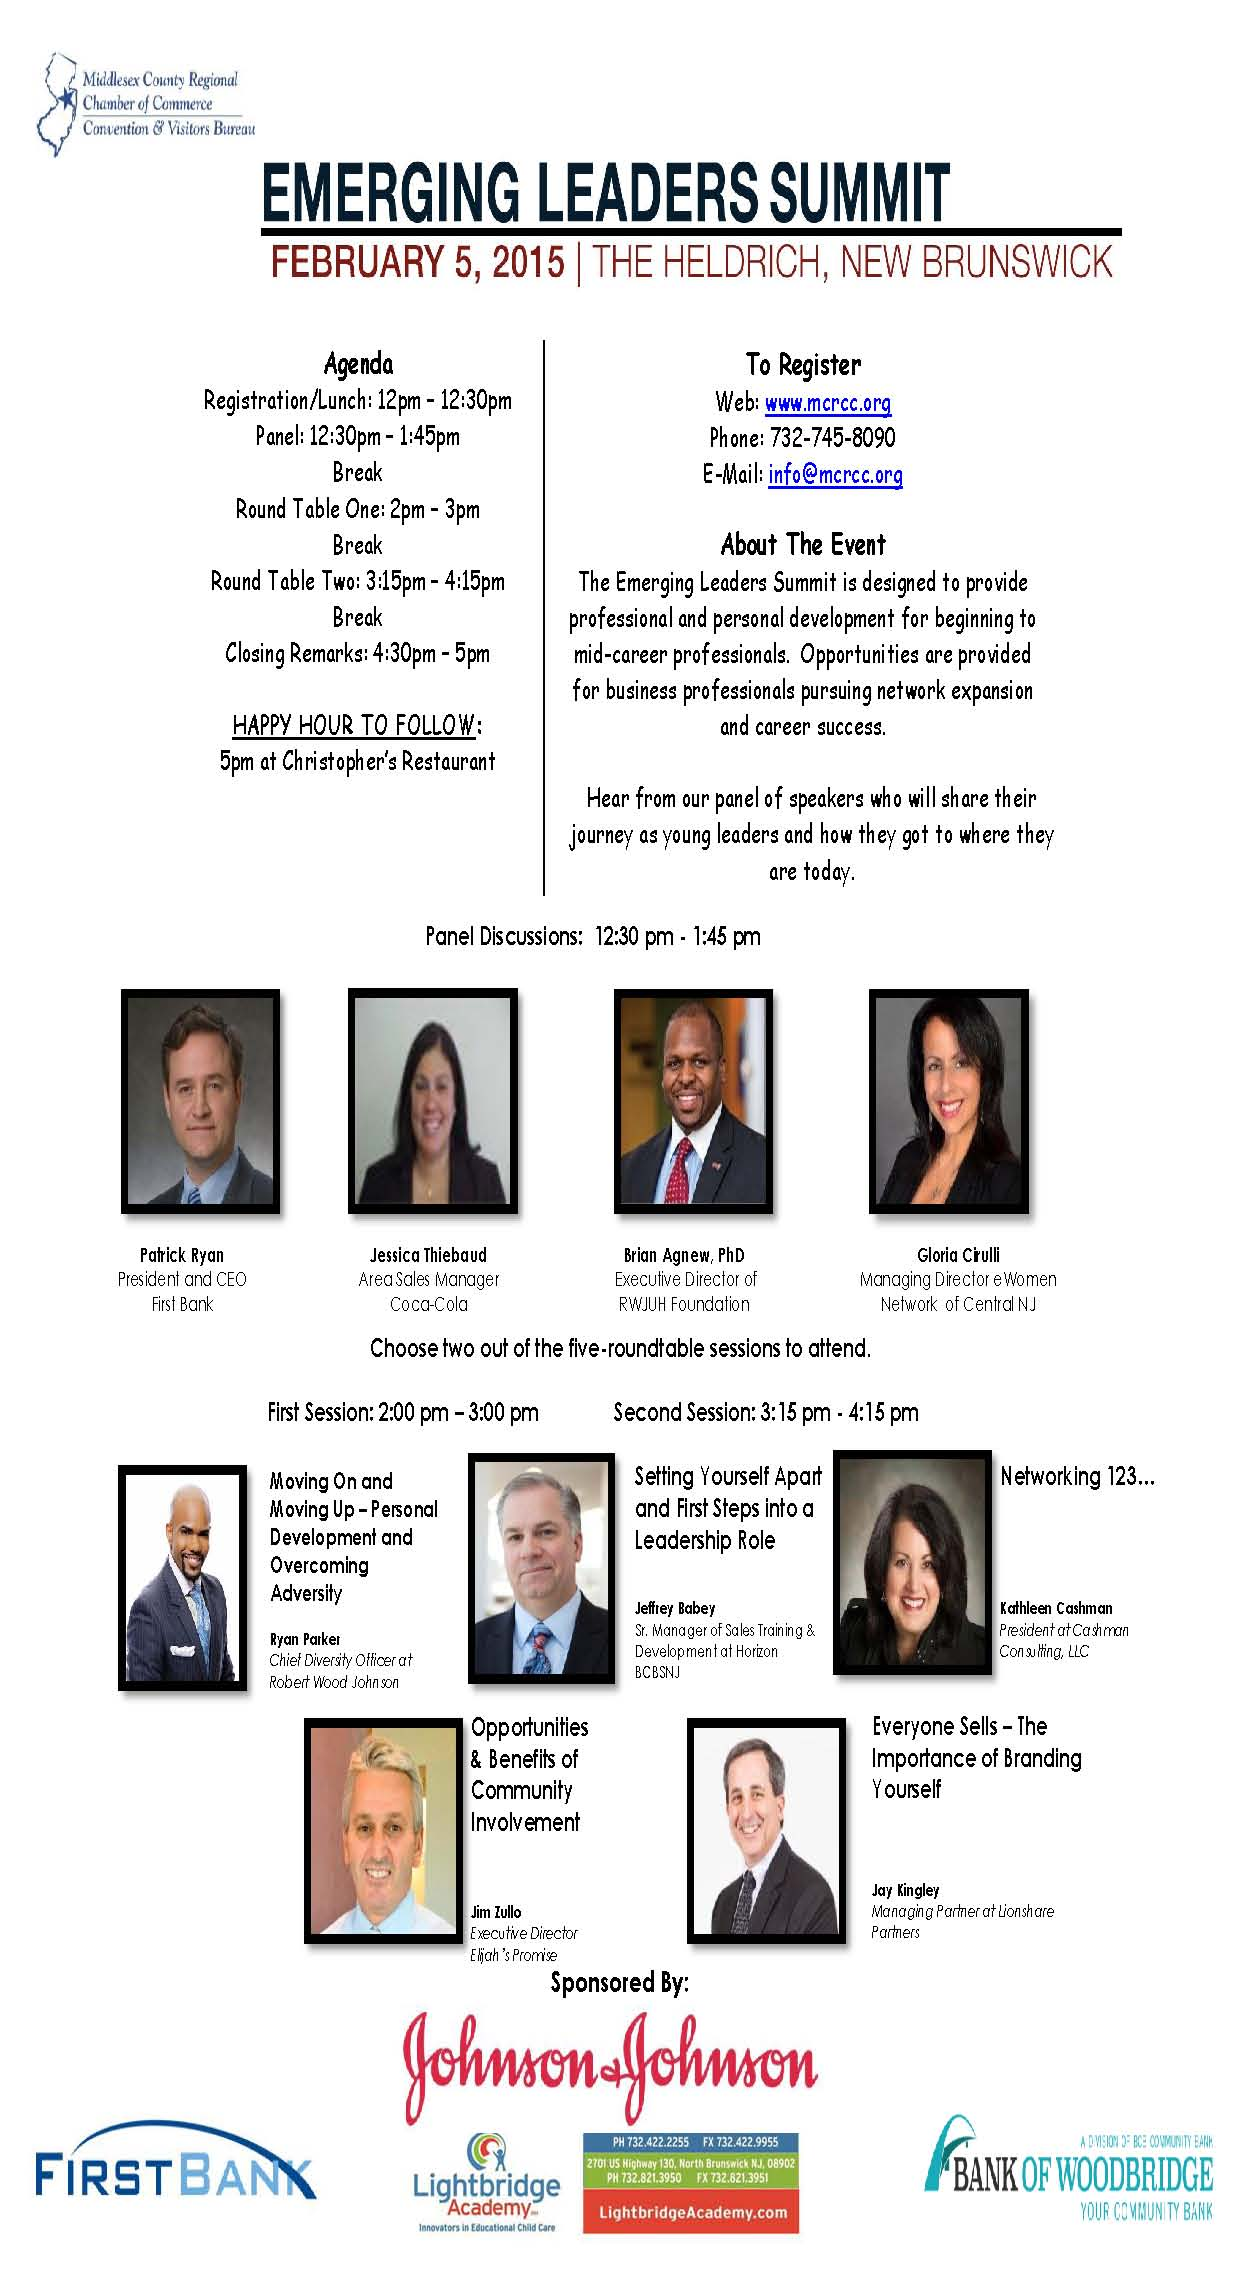 Emerging Leaders Summit on February 5th